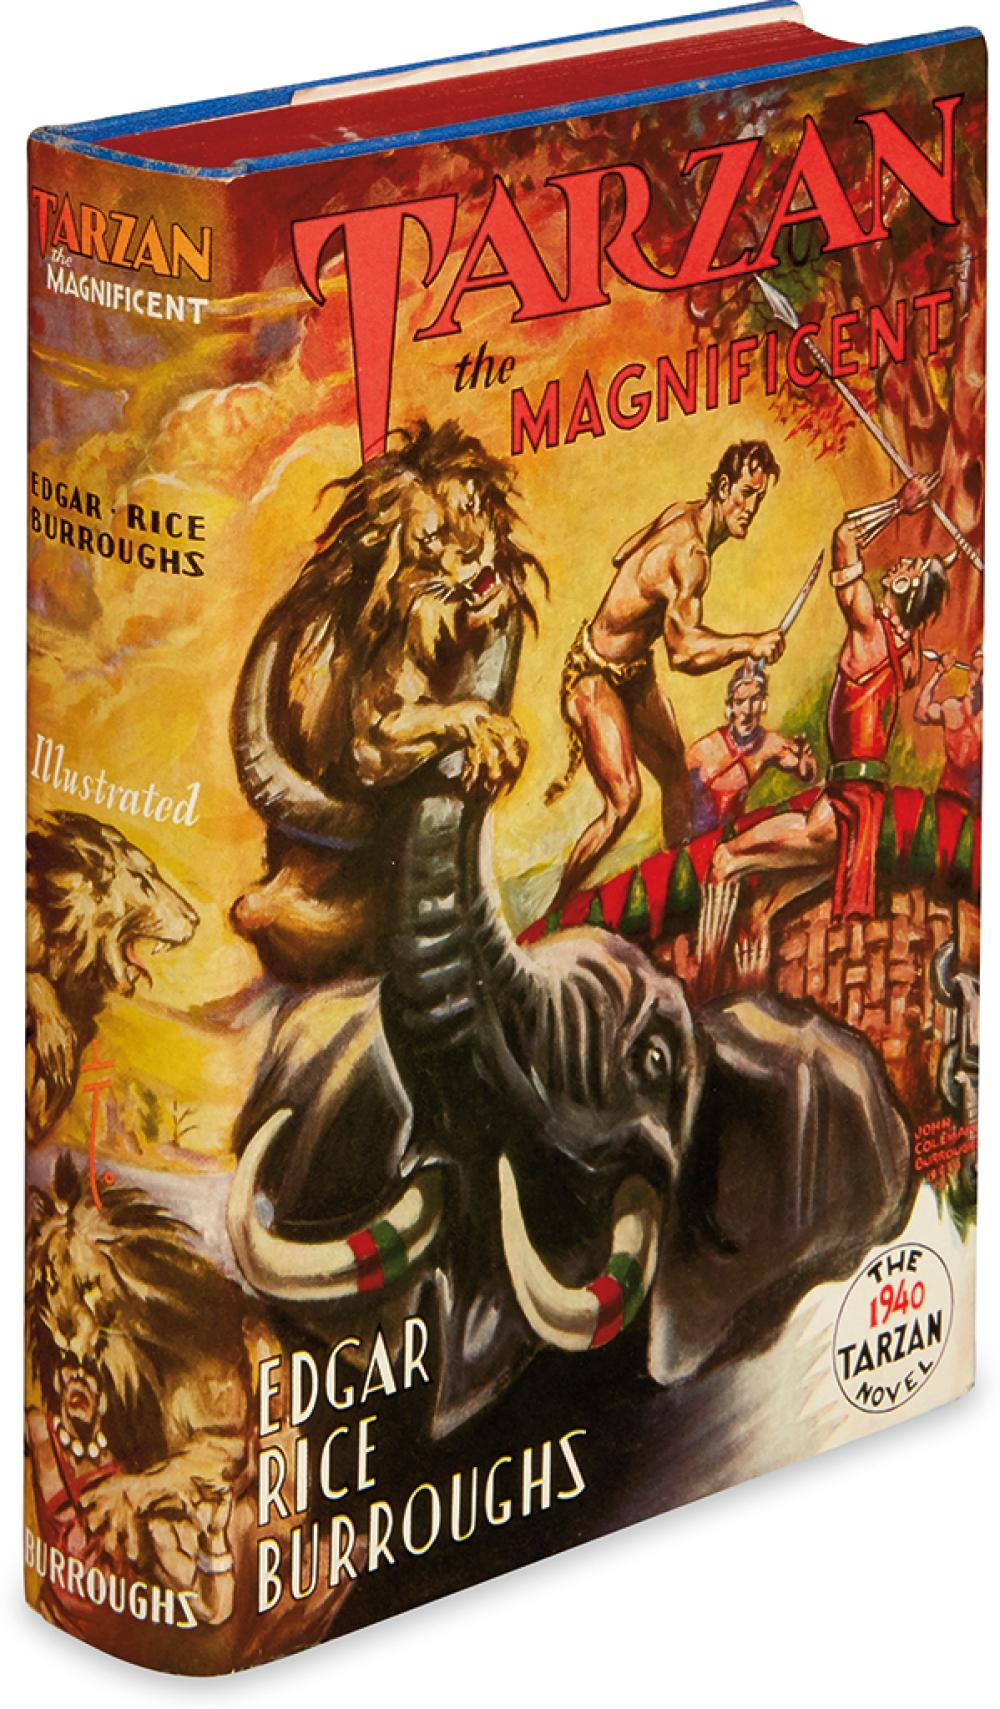 BURROUGHS, EDGAR RICE. Tarzan the Magnificent.